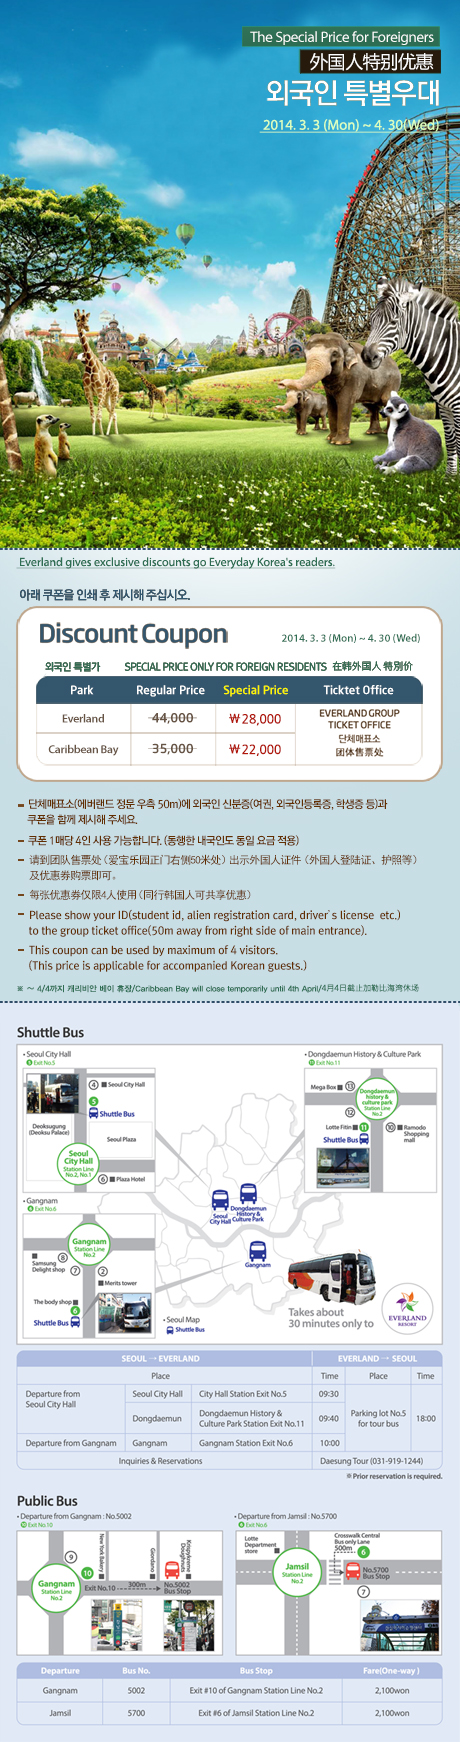 everland discount coupon for Pocket WiFi Korea